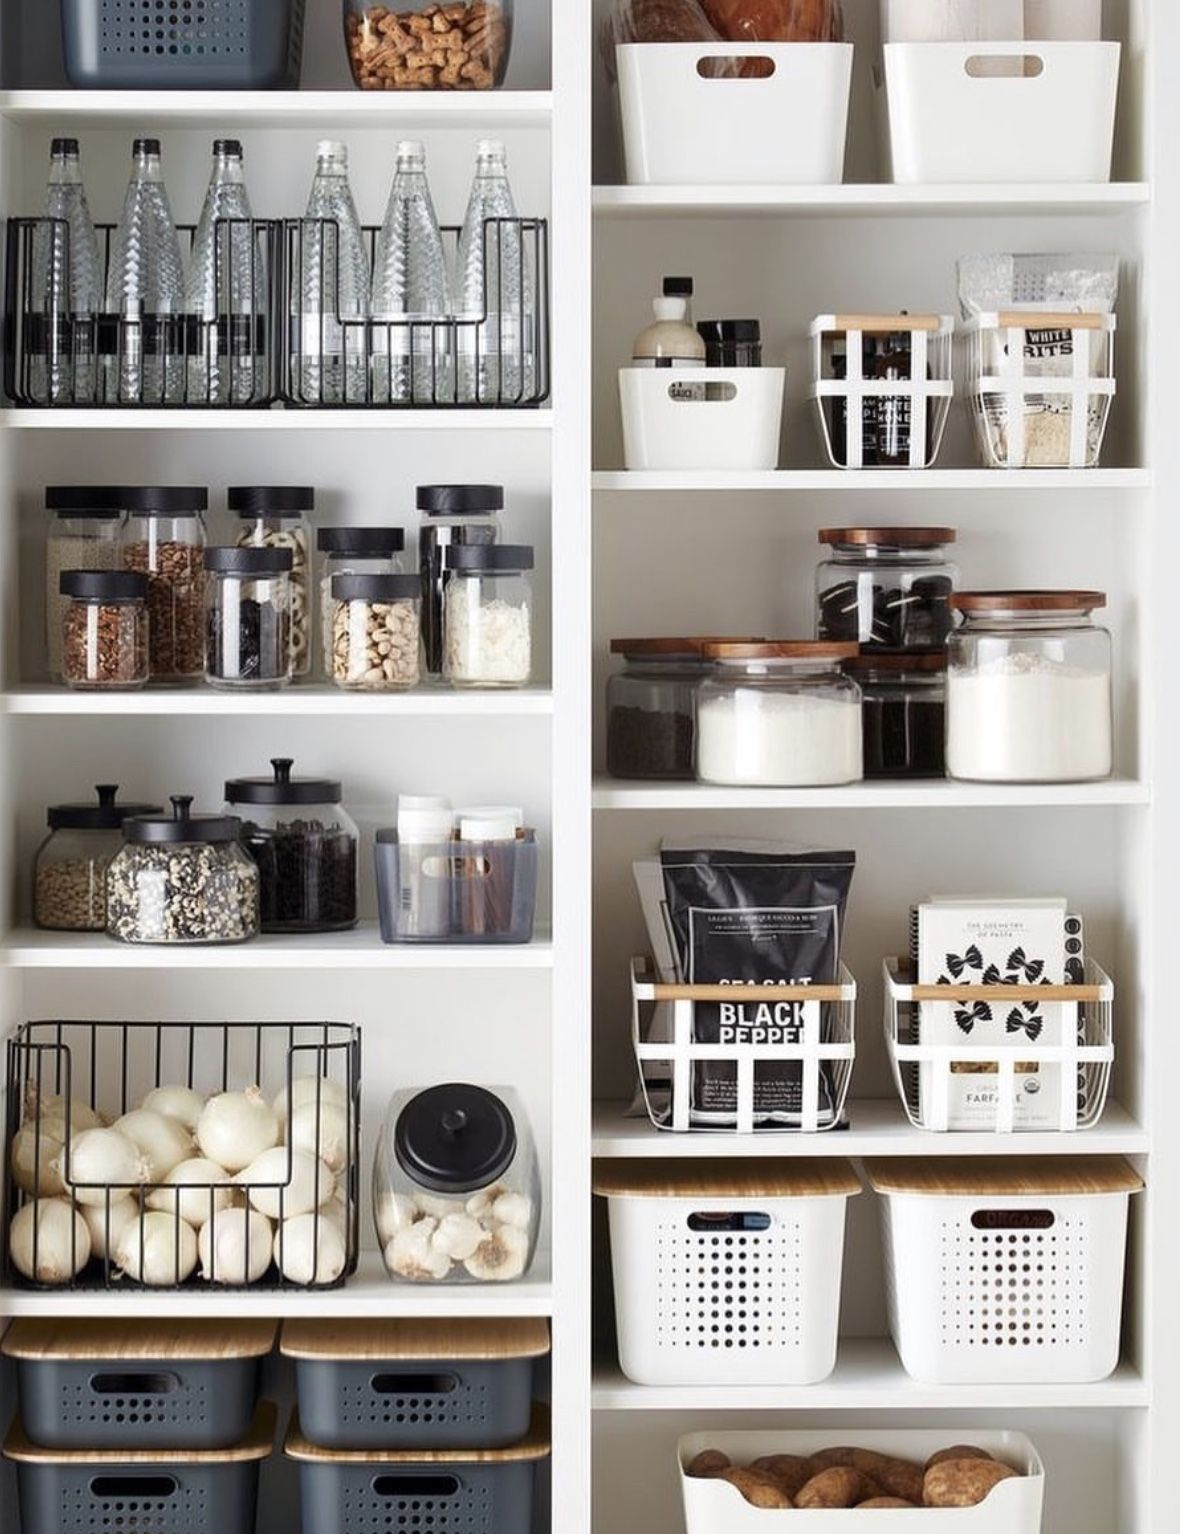 Pantry Goals In 2020 Pantry Organizers Kitchen Organization Pantry Kitchen Pantry Design